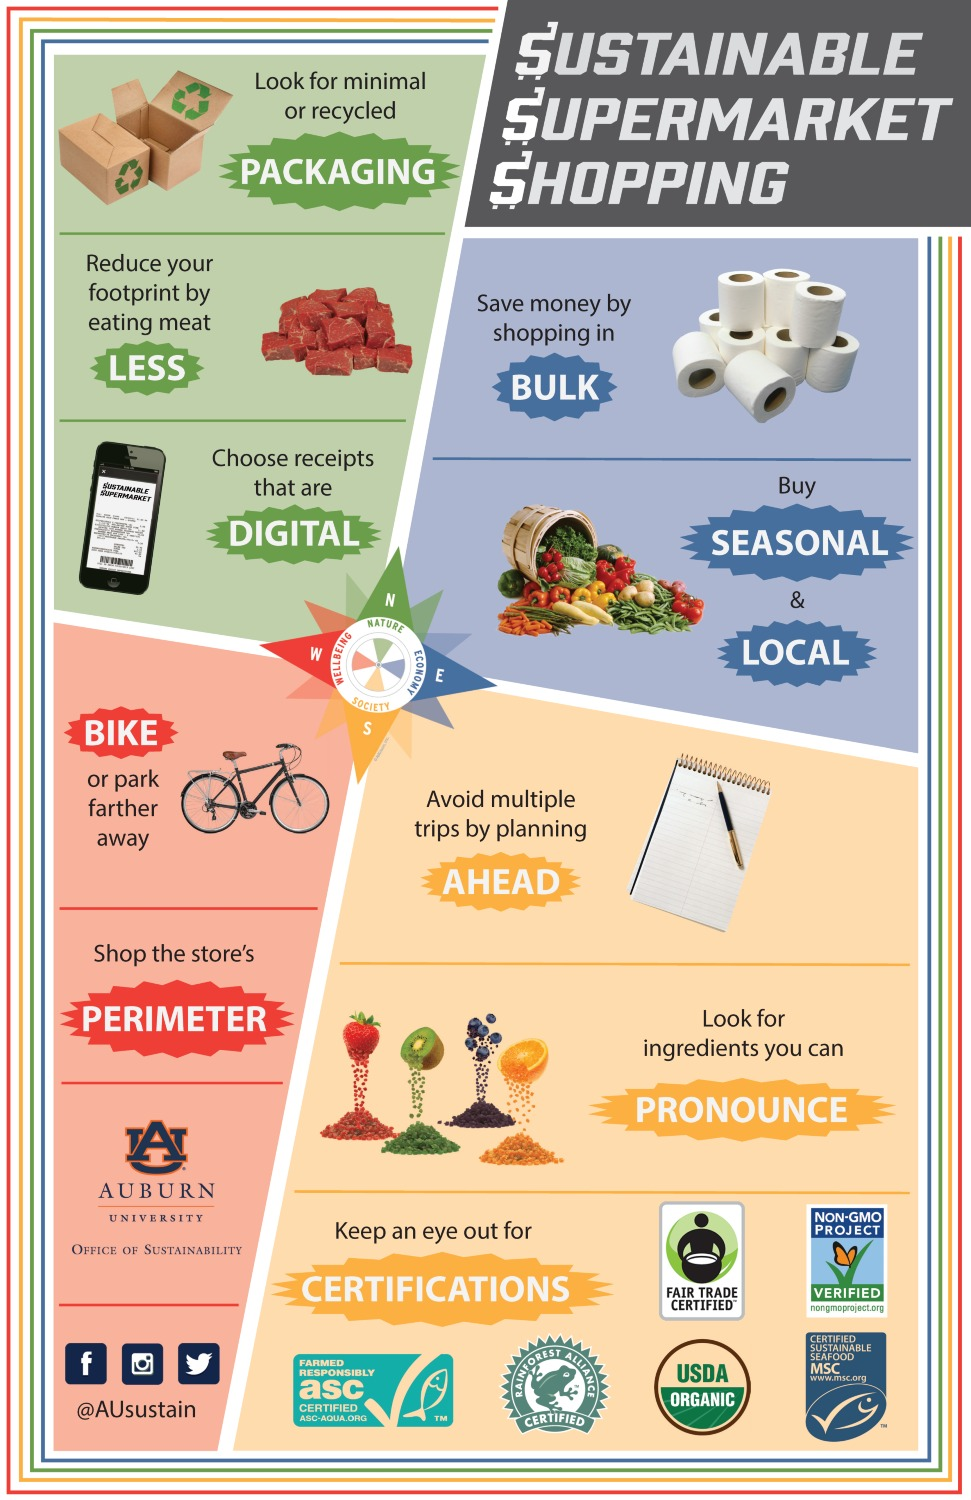 Graphic with sustainable supermarket shopping tips.